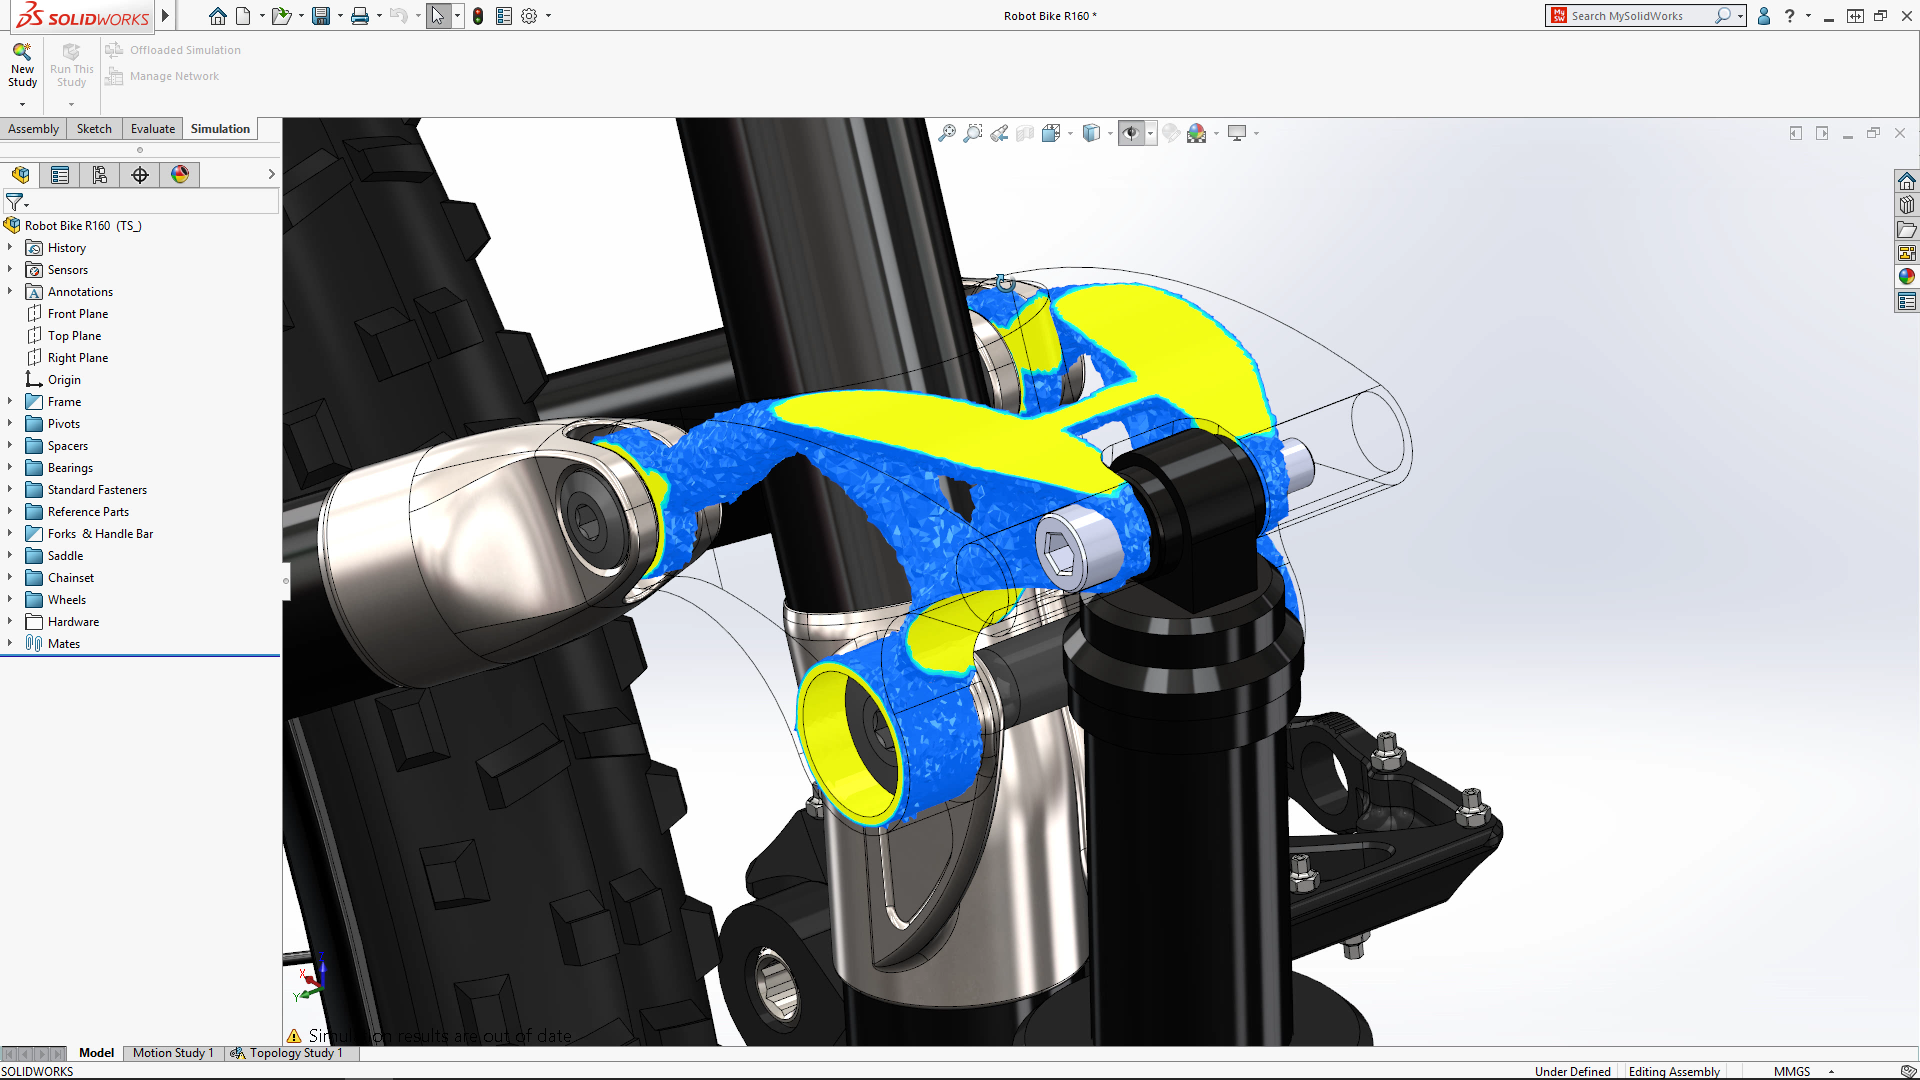 SOLIDWORKS 2019 – Design and Manufacturing just got Easier